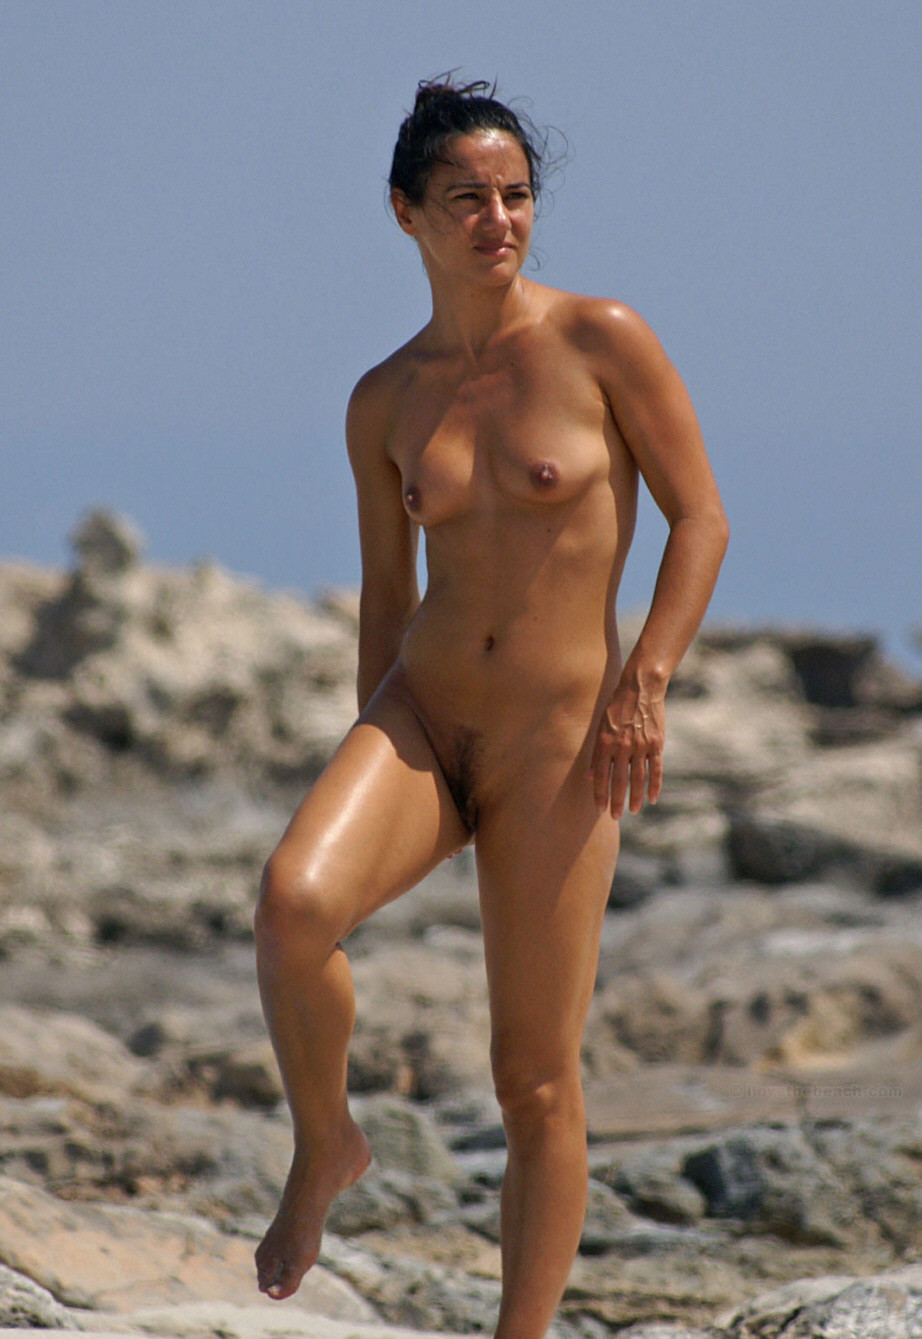 Nudist babe spied on the beach